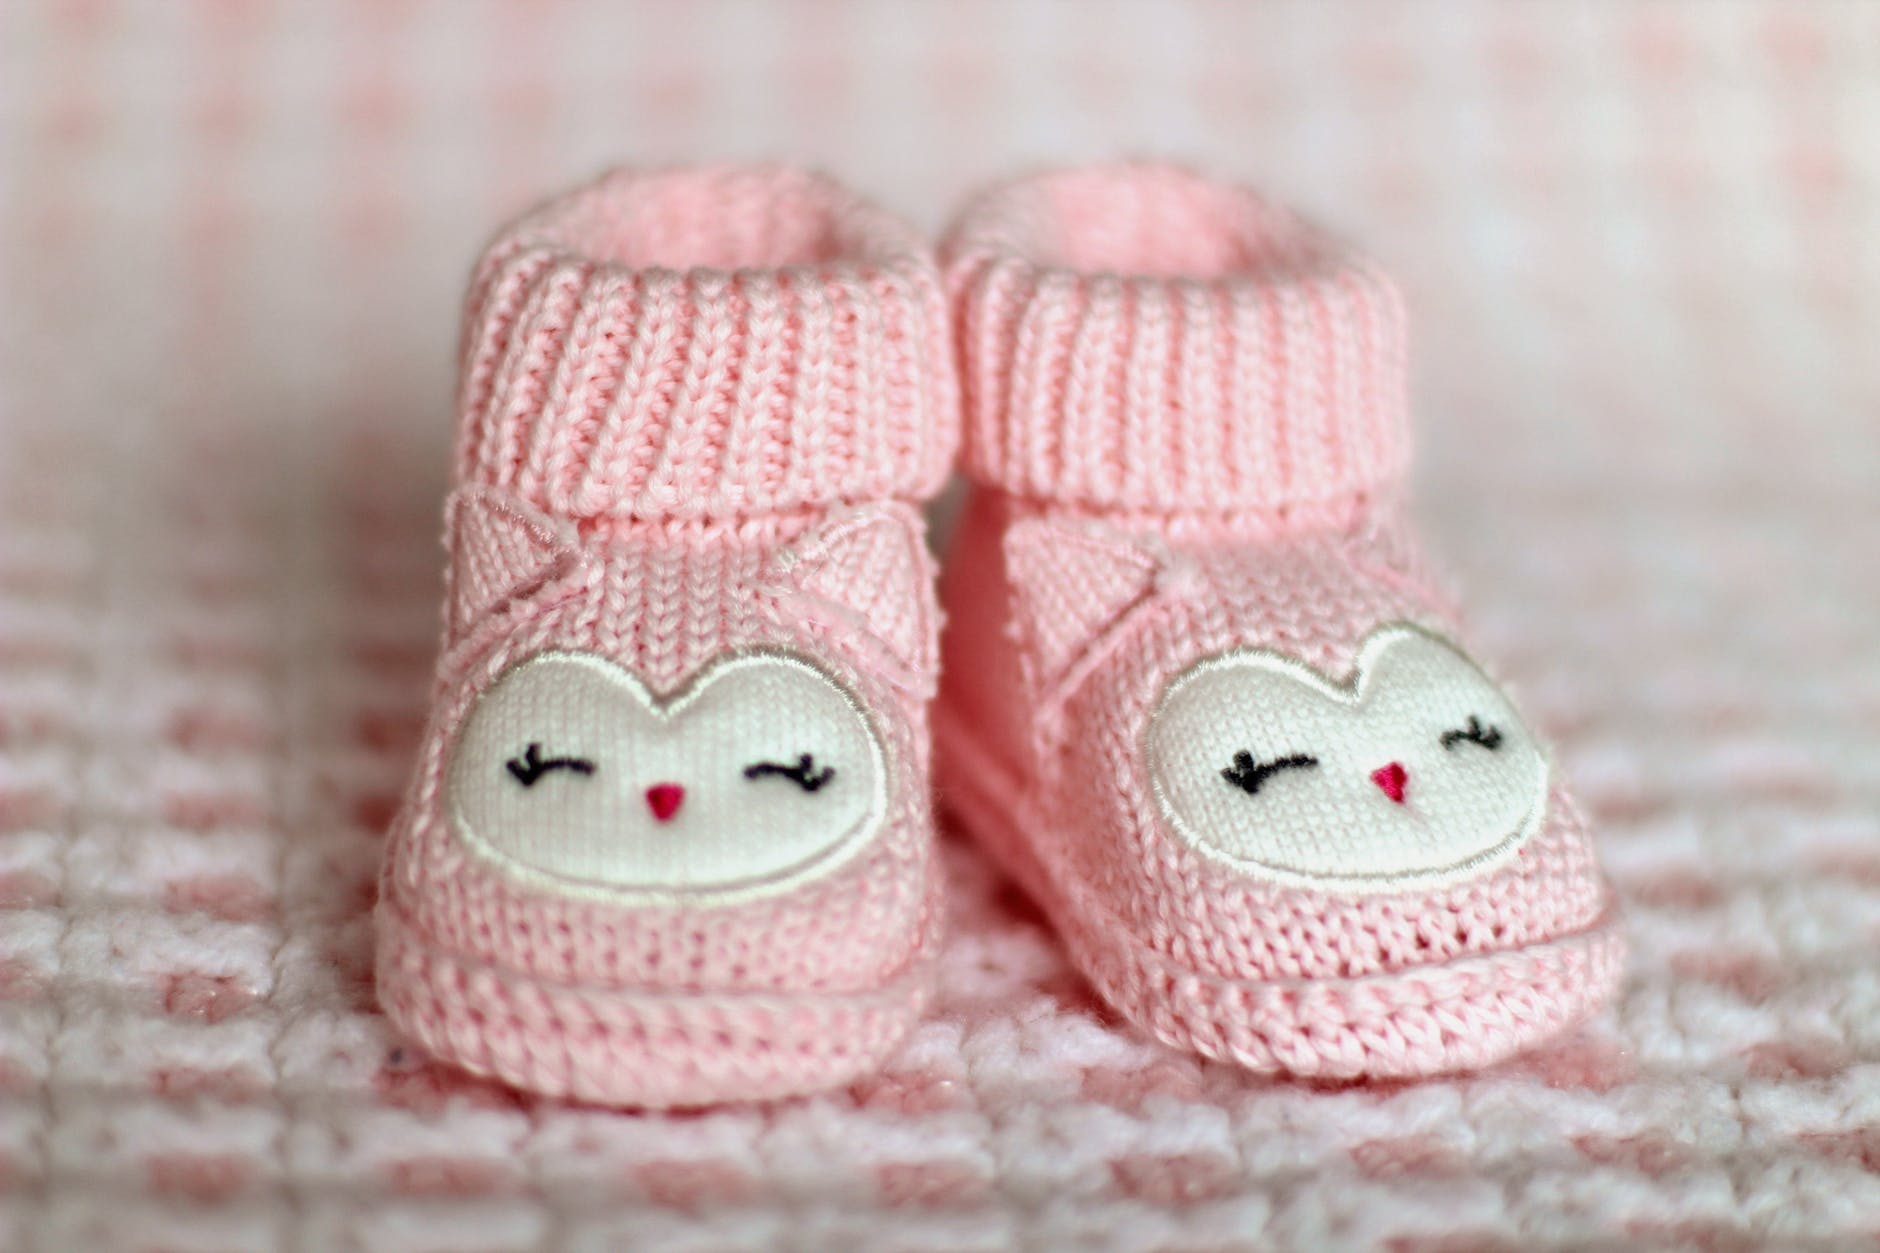 Baby booties | [Tutorial for Beginners] How To Knit Baby Booties | Fortune Cookie Design